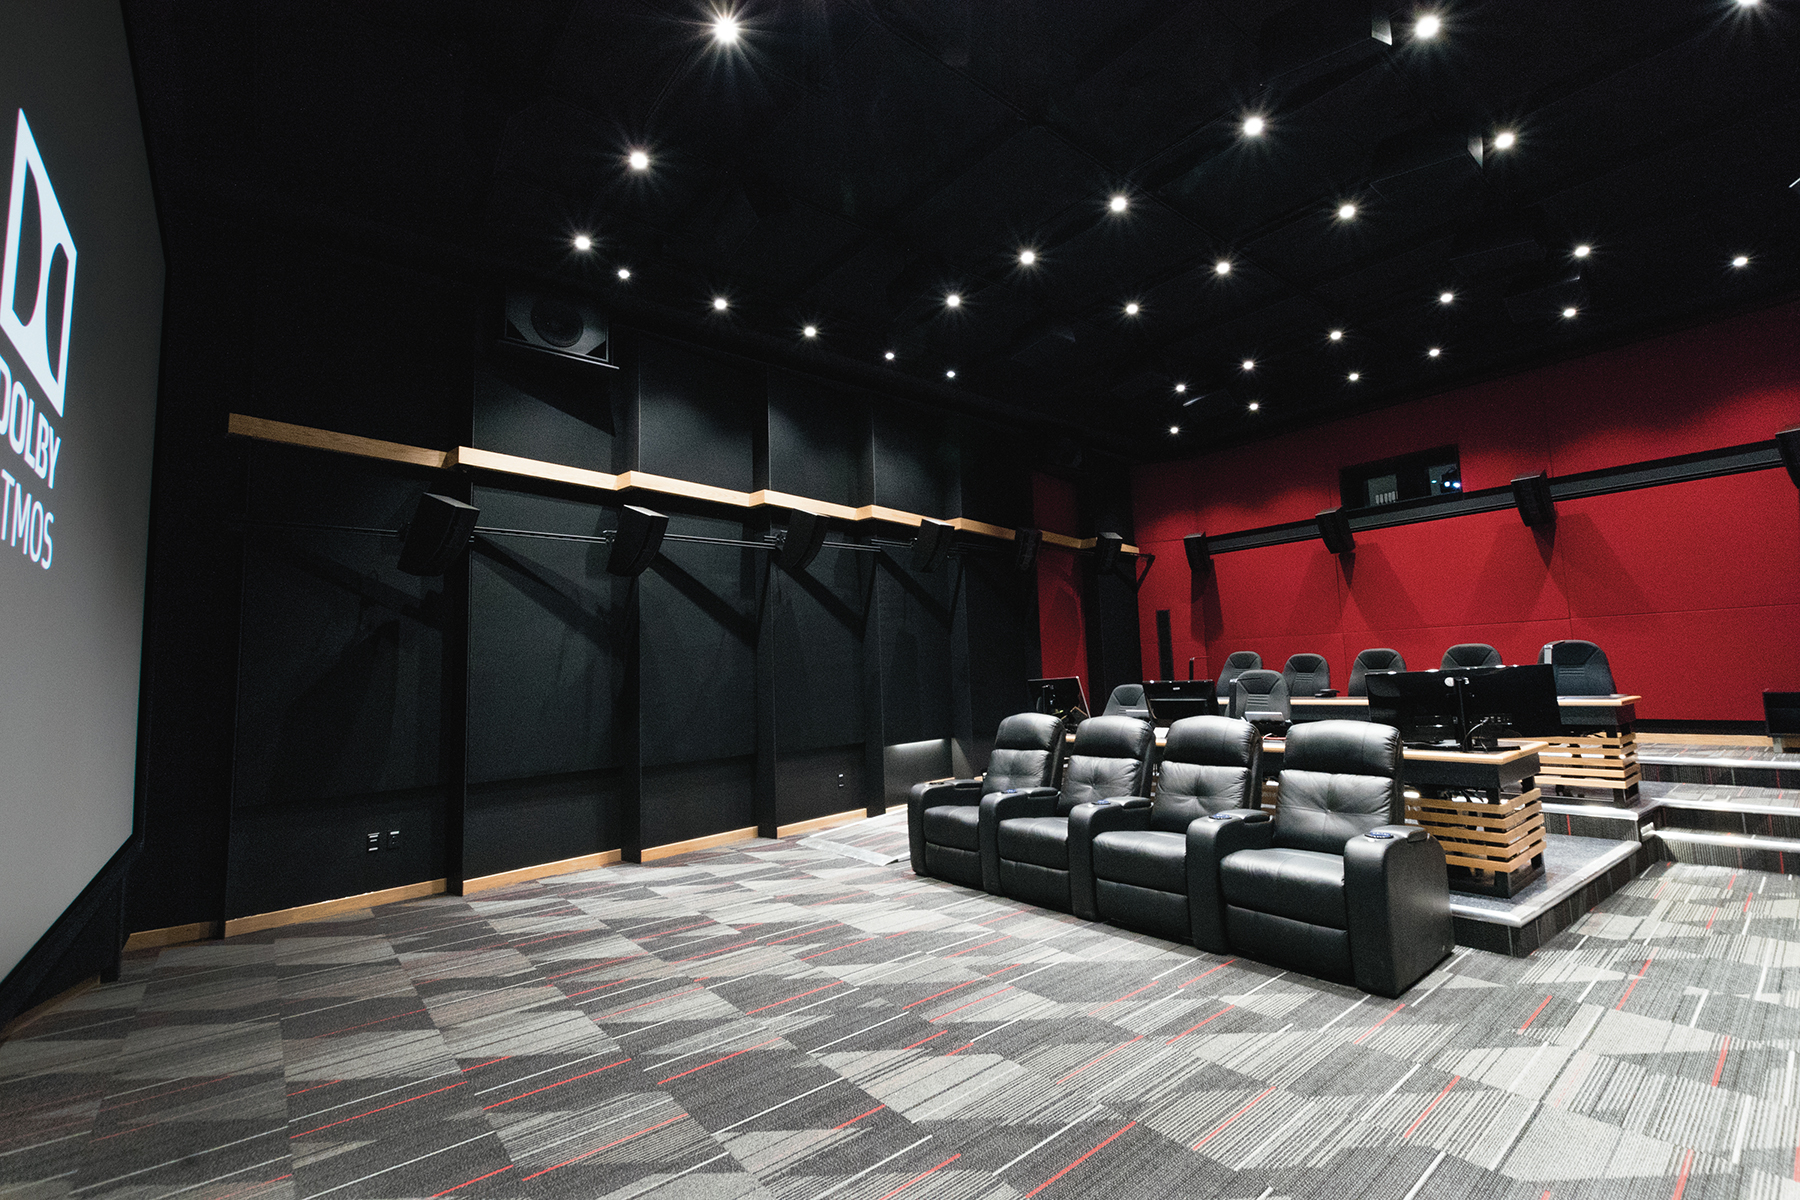 Atmos Theatre Seating